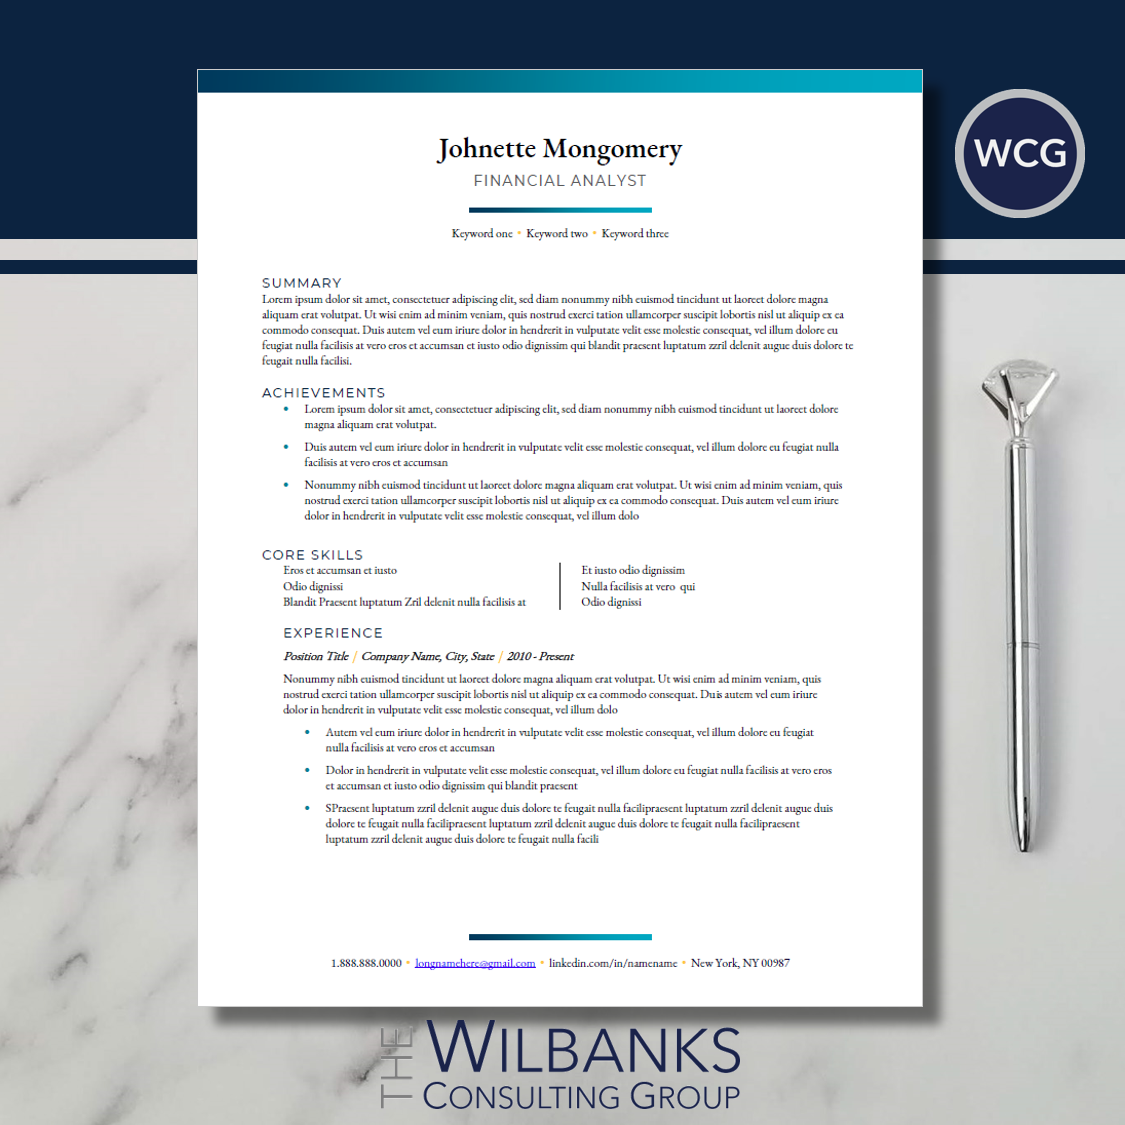 Traditional Resume Template | Design, Structure and Flow helps WCG clients  get interviews | The Wilbanks Consulting Group